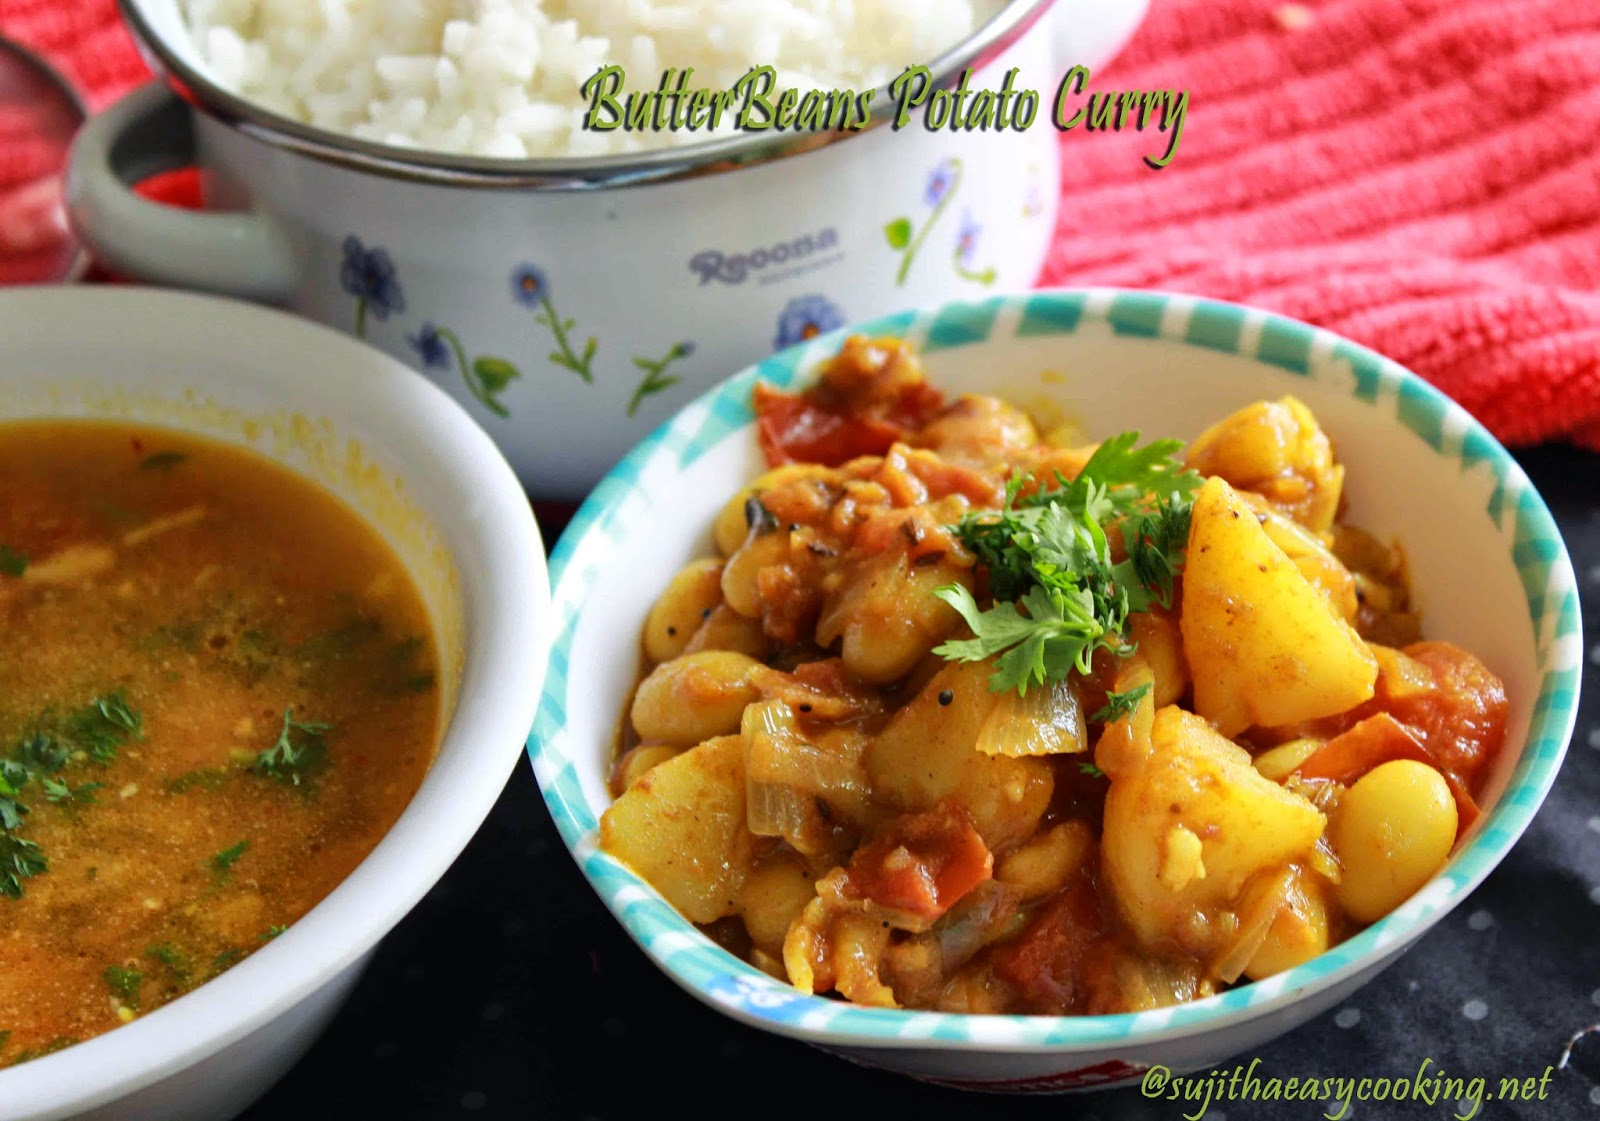 ButterBeans Potato Curry